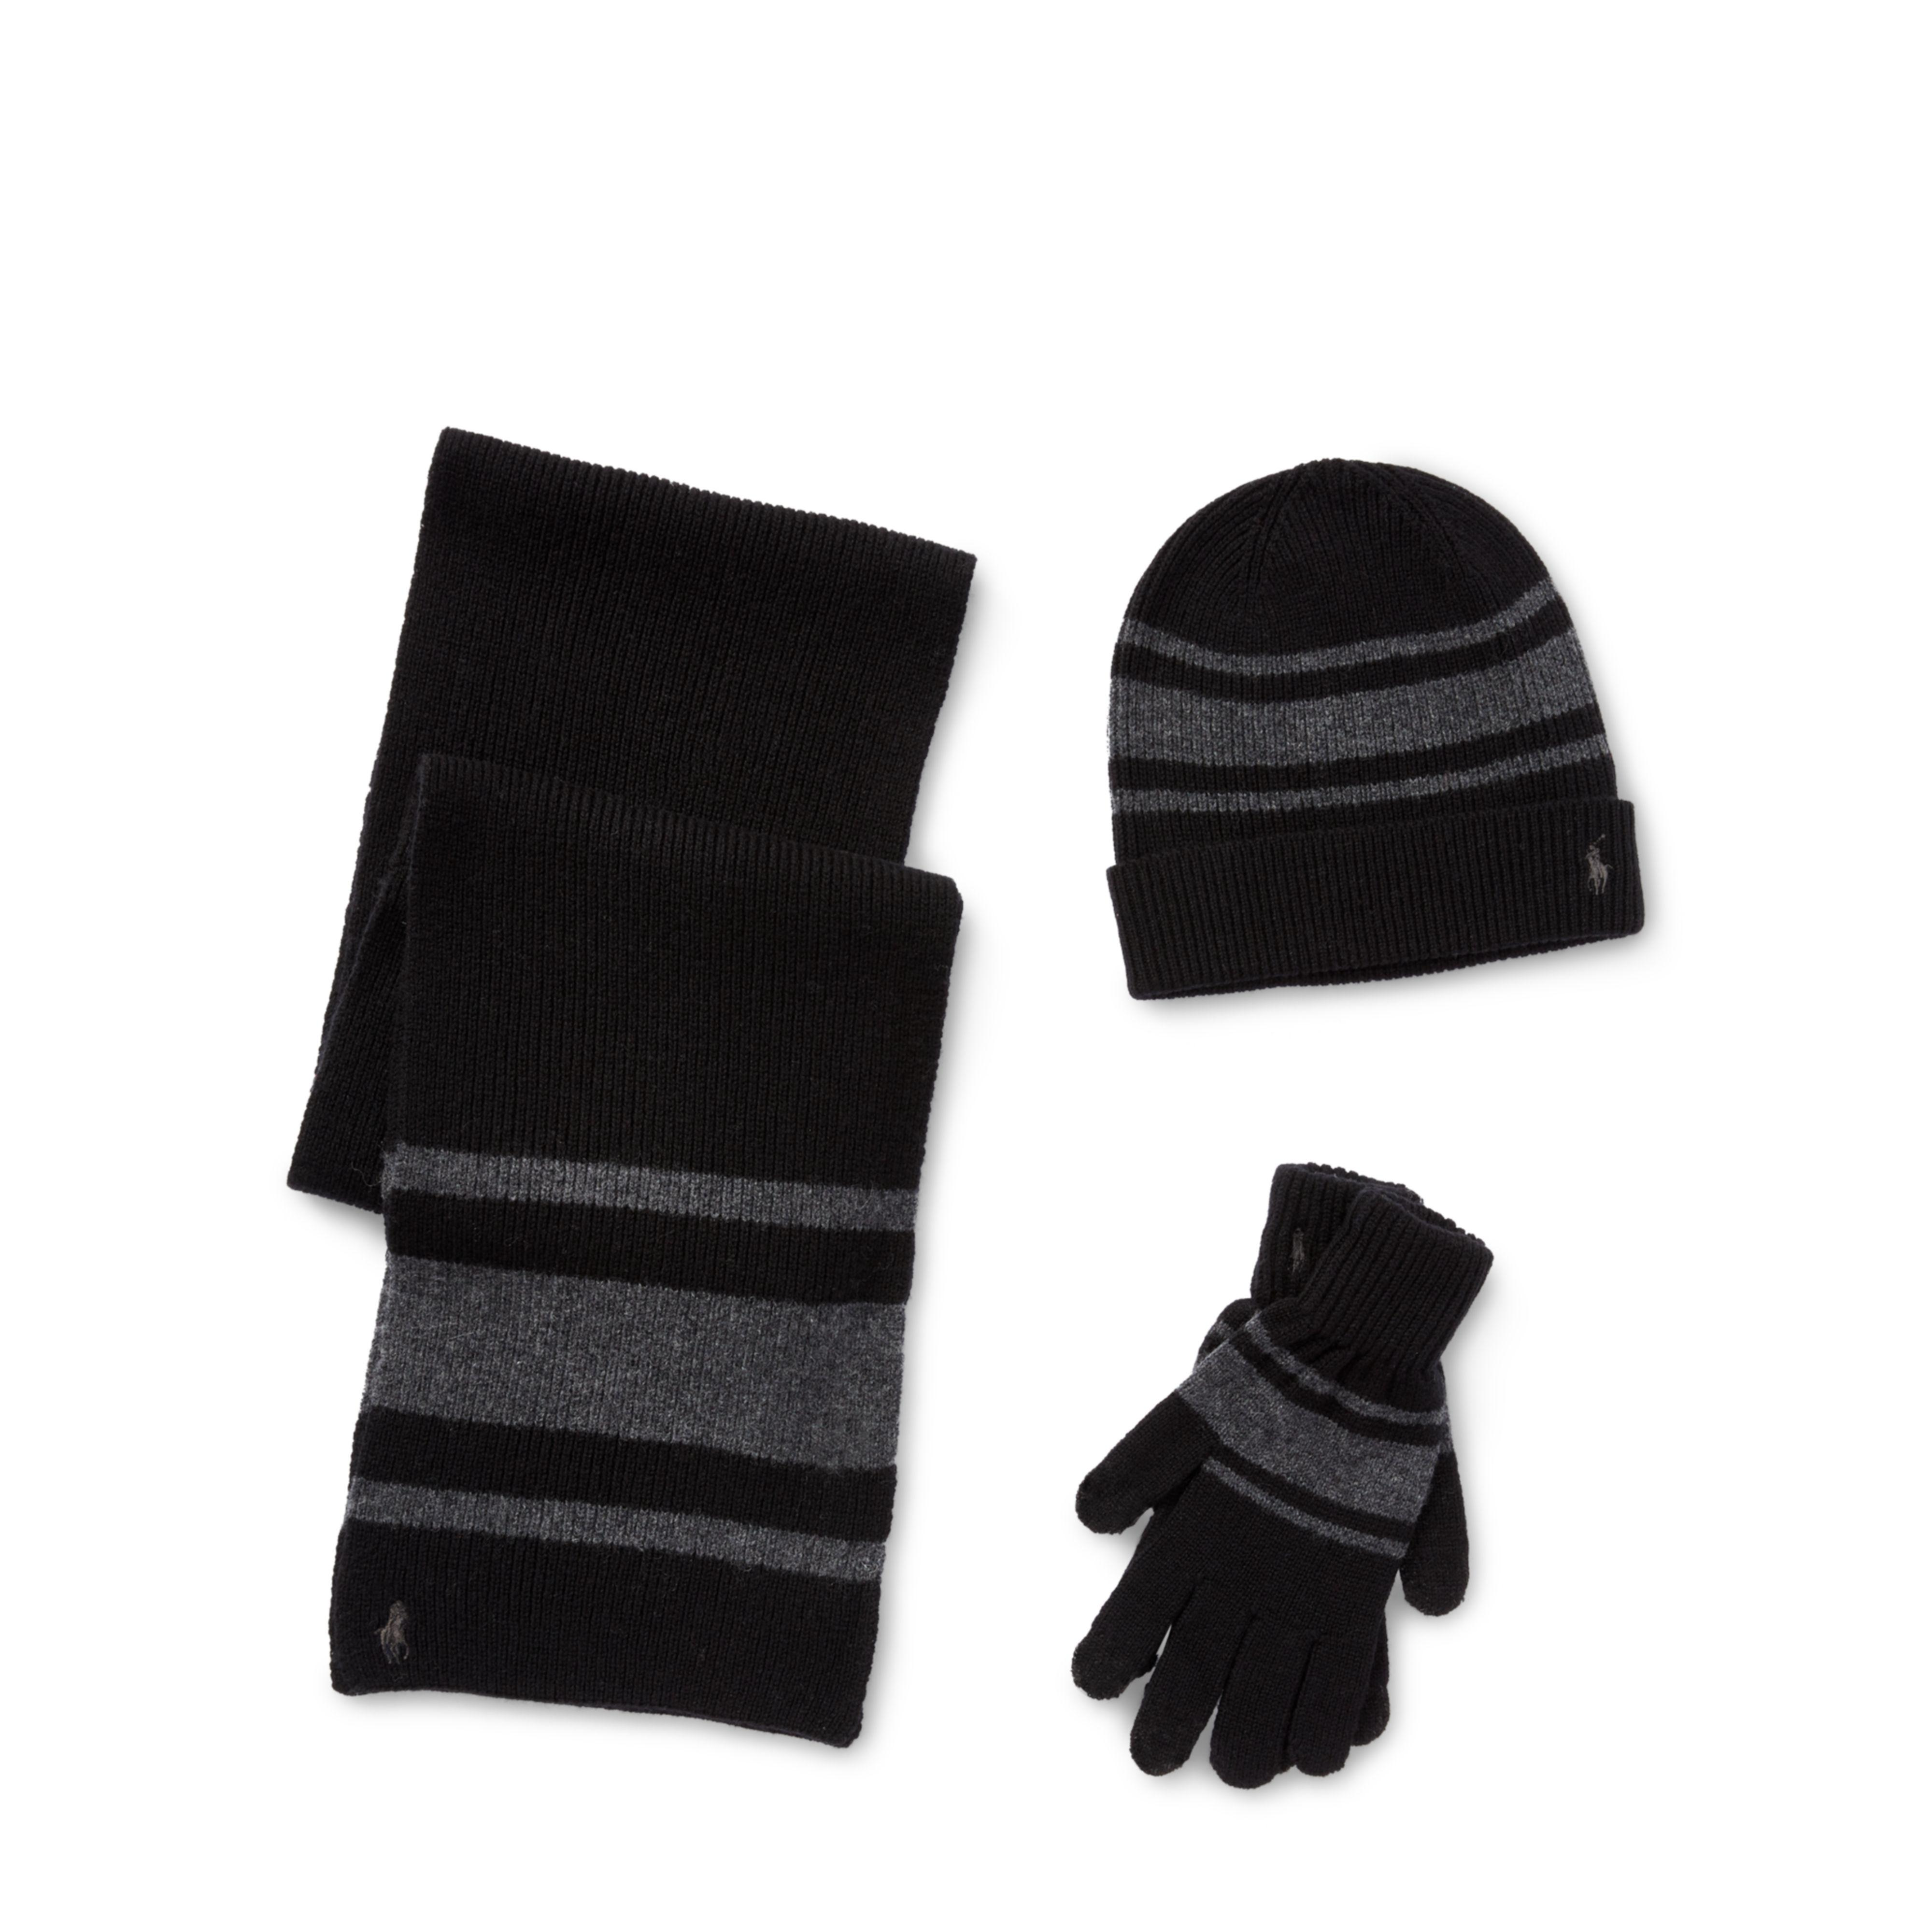 bef00a97fdf cheapest womens scarves wool or leather fendi f2b48 09dc4  get lyst polo  ralph lauren striped hat scarf glove set in black for men 8d175 8d0ee